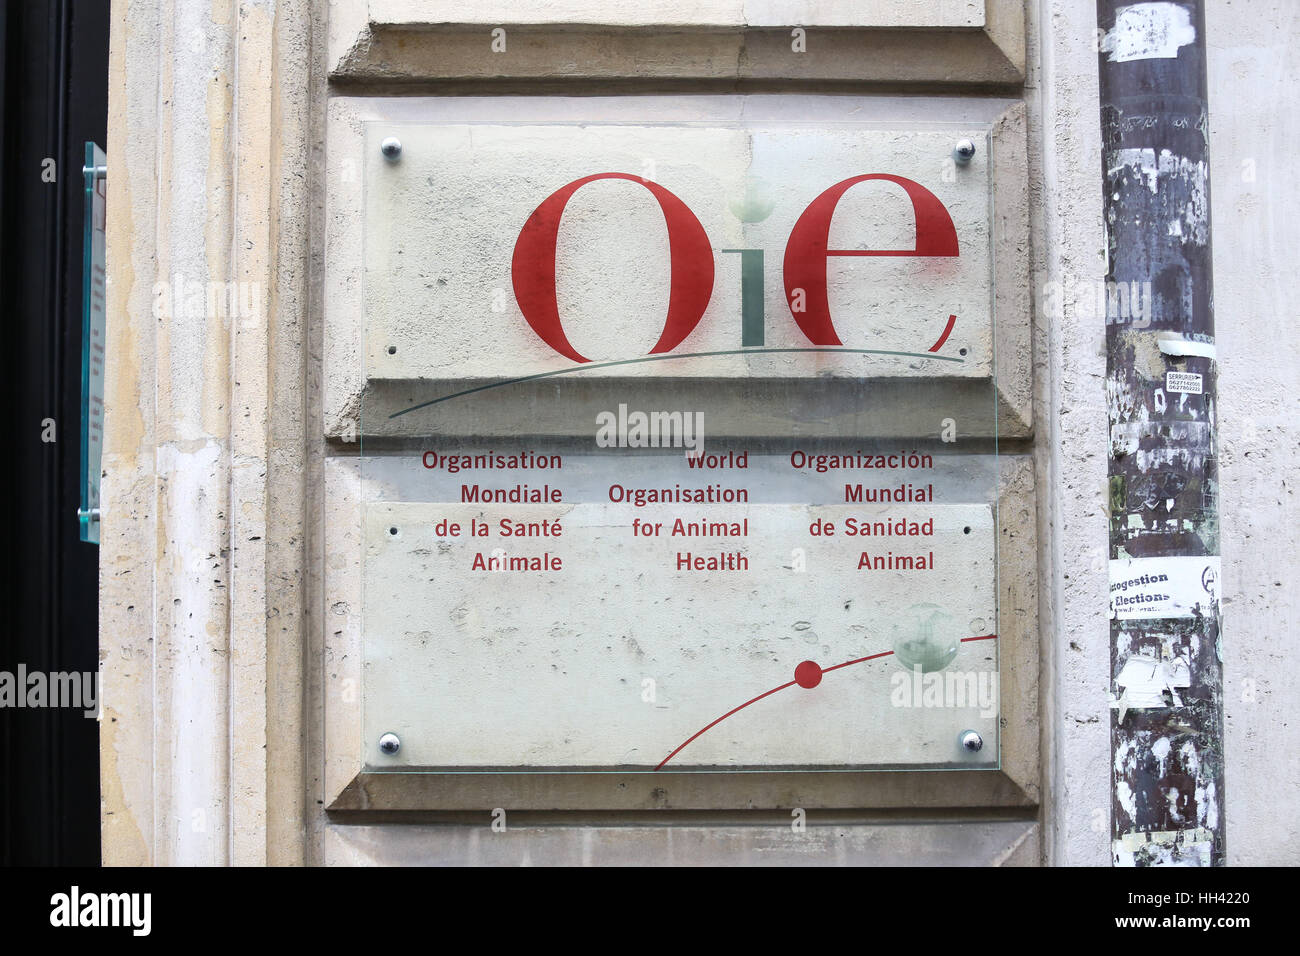 The OIE (World Organisation for Animal Health) headquarters in Paris, France. - Stock Image